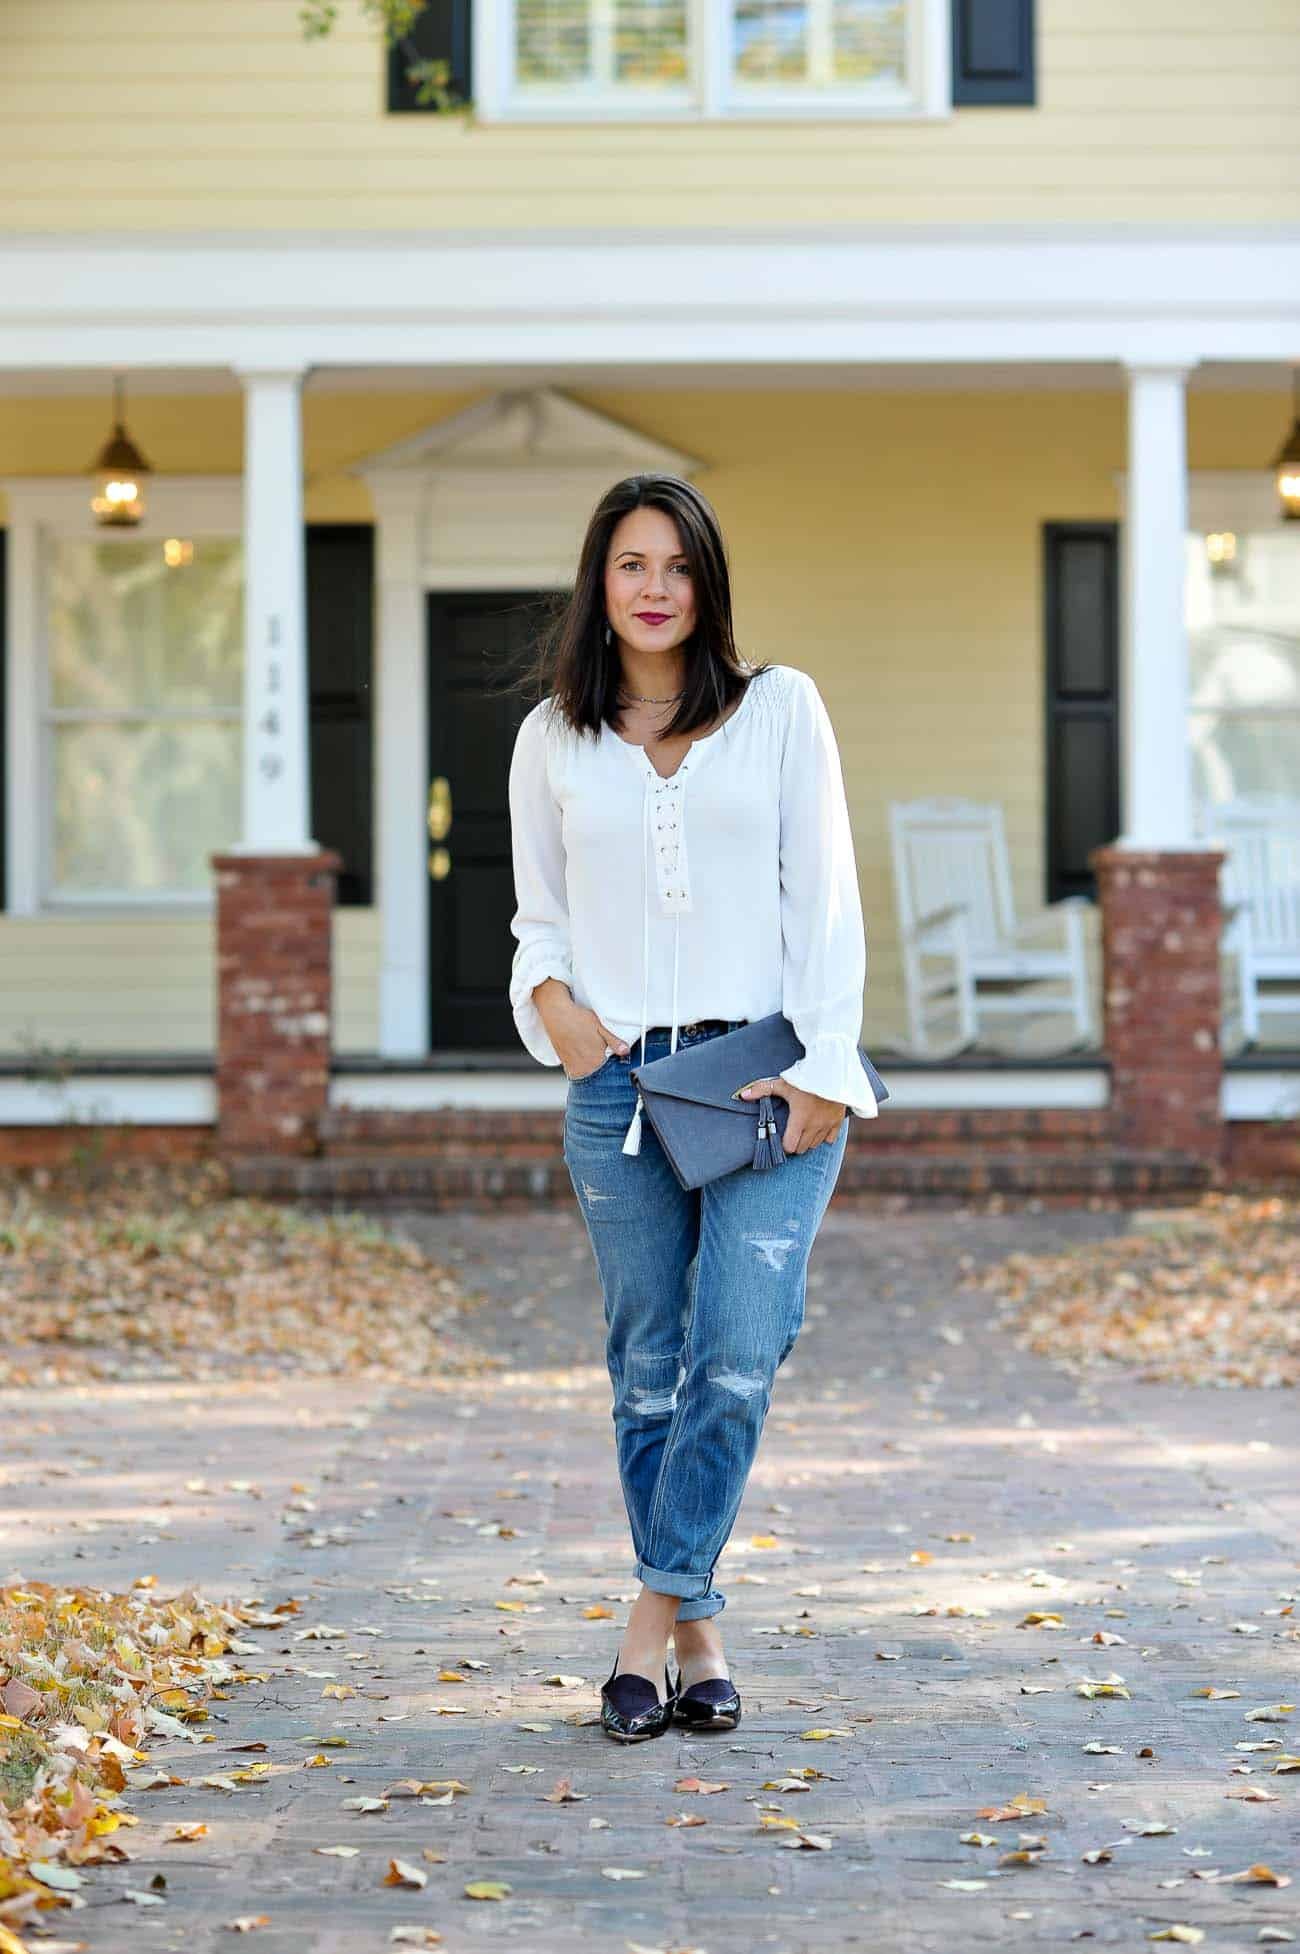 white house black market outfit, casual affordable weekend style looks - My Style Vita @mystylevita